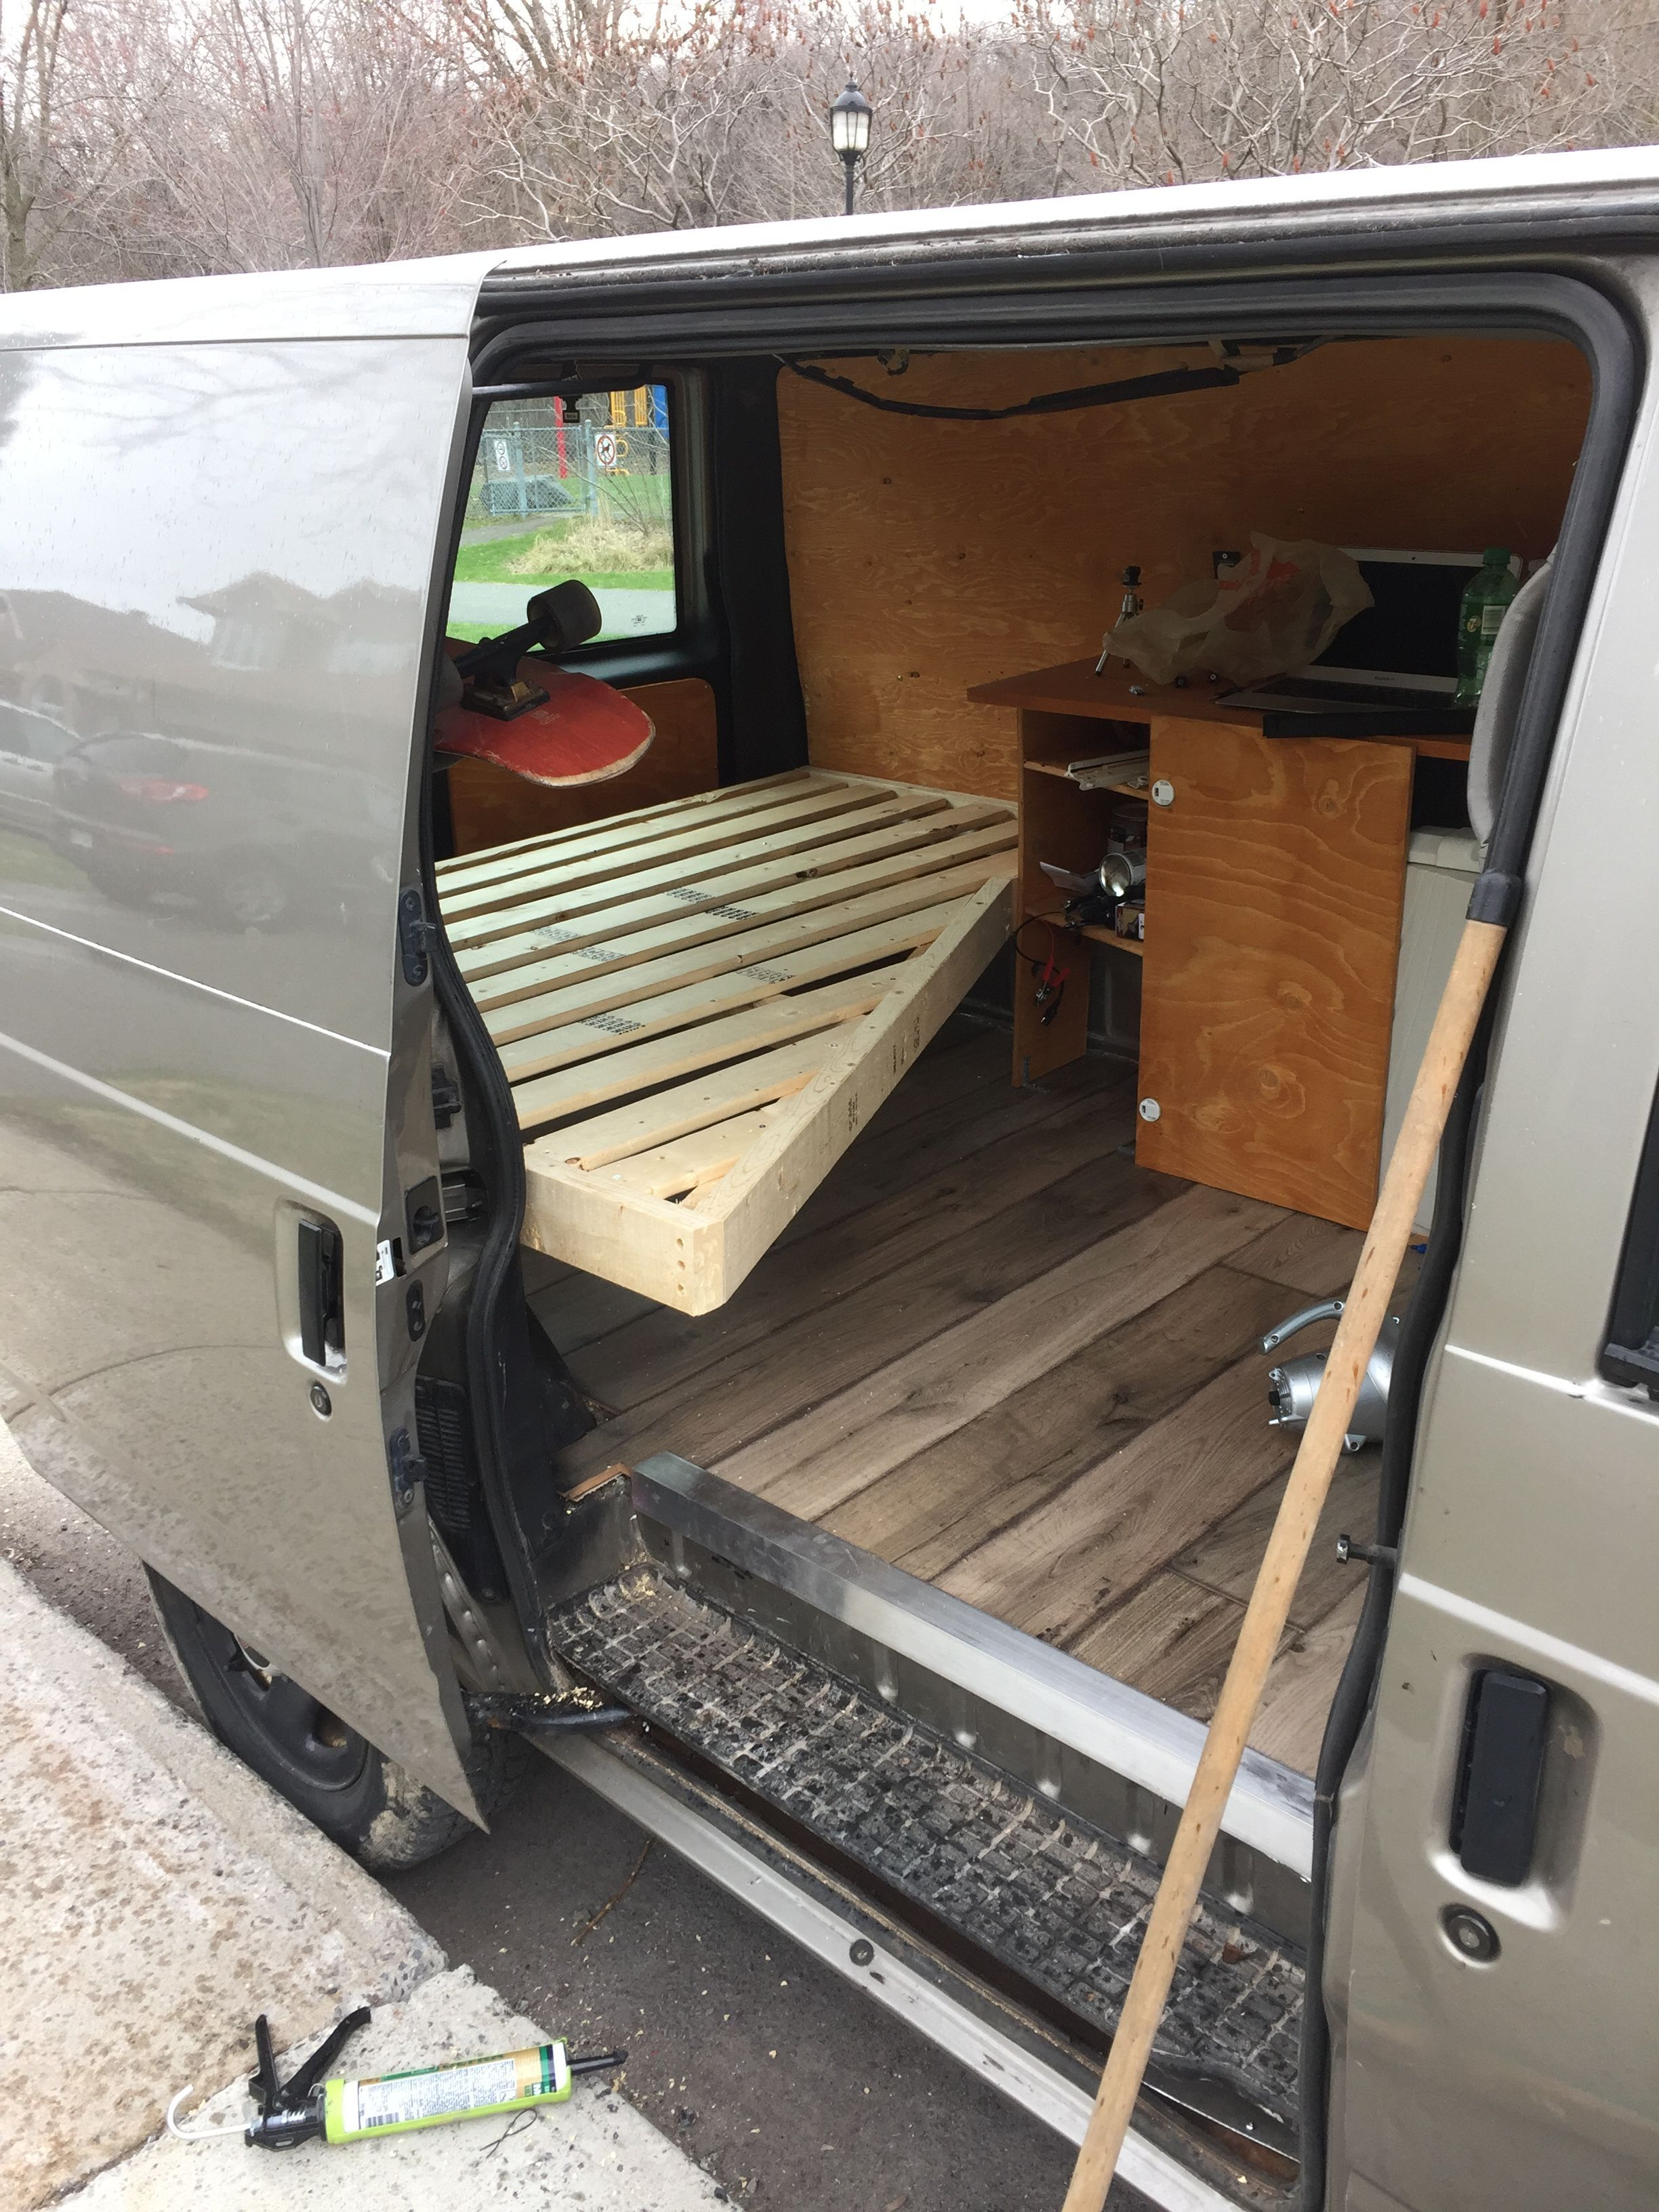 30 Beautiful Photo Of Astro Van Conversion Ideas Astro Van